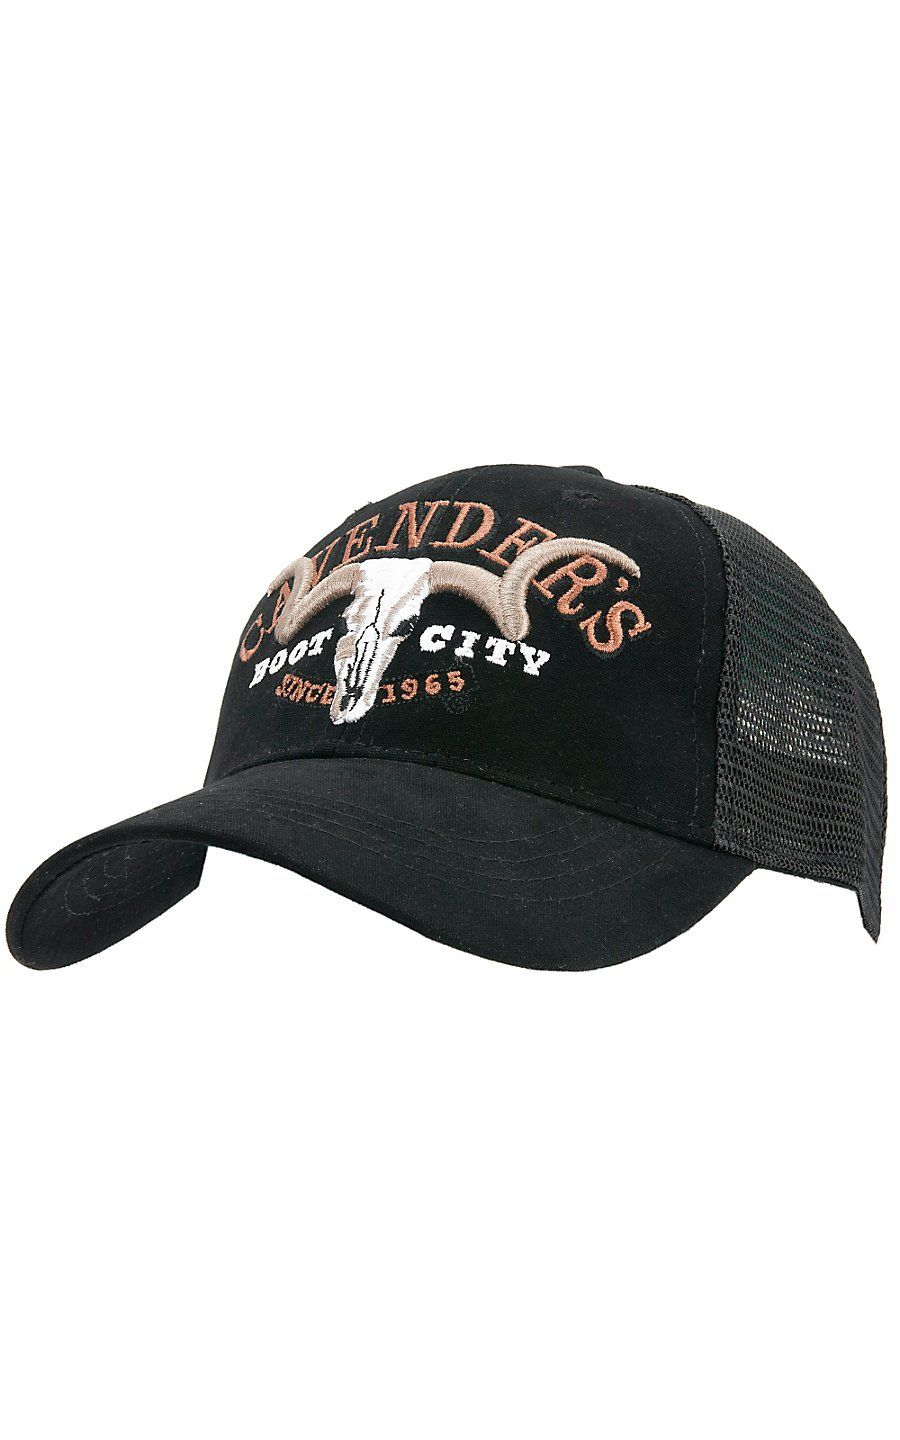 Cavender s Black with Black Mesh Trucker Cap  544b147da5d